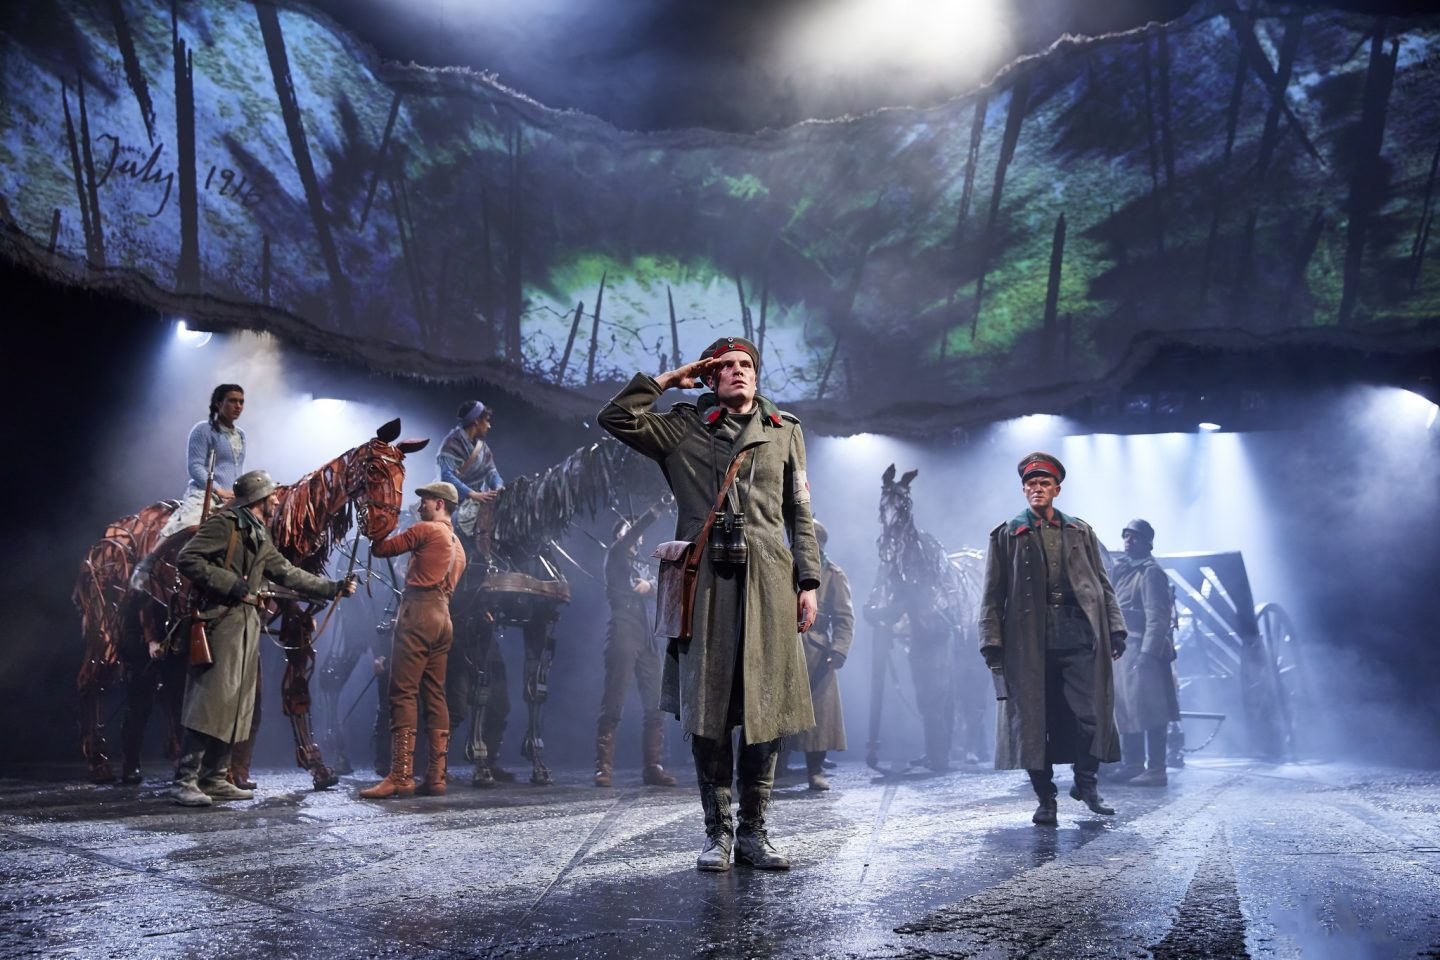 The War Horse National Tour